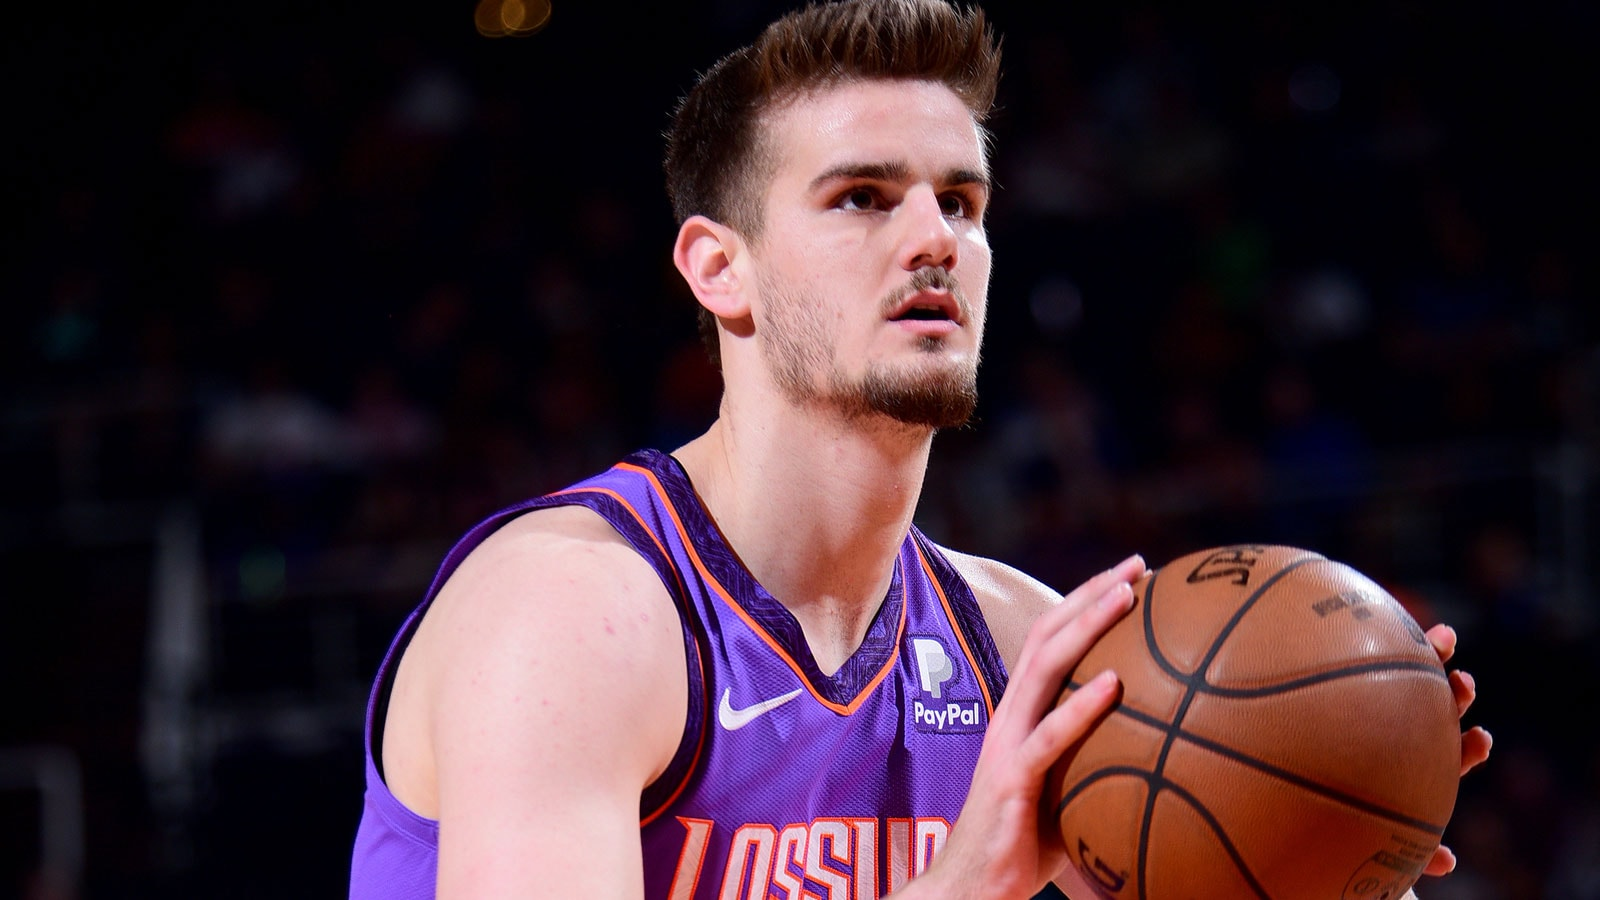 Dragan Bender #35 of the Phoenix Suns shoots a free throw during the game against the Chicago Bulls on March 18, 2019 at Talking Stick Resort Arena in Phoenix, Arizona.